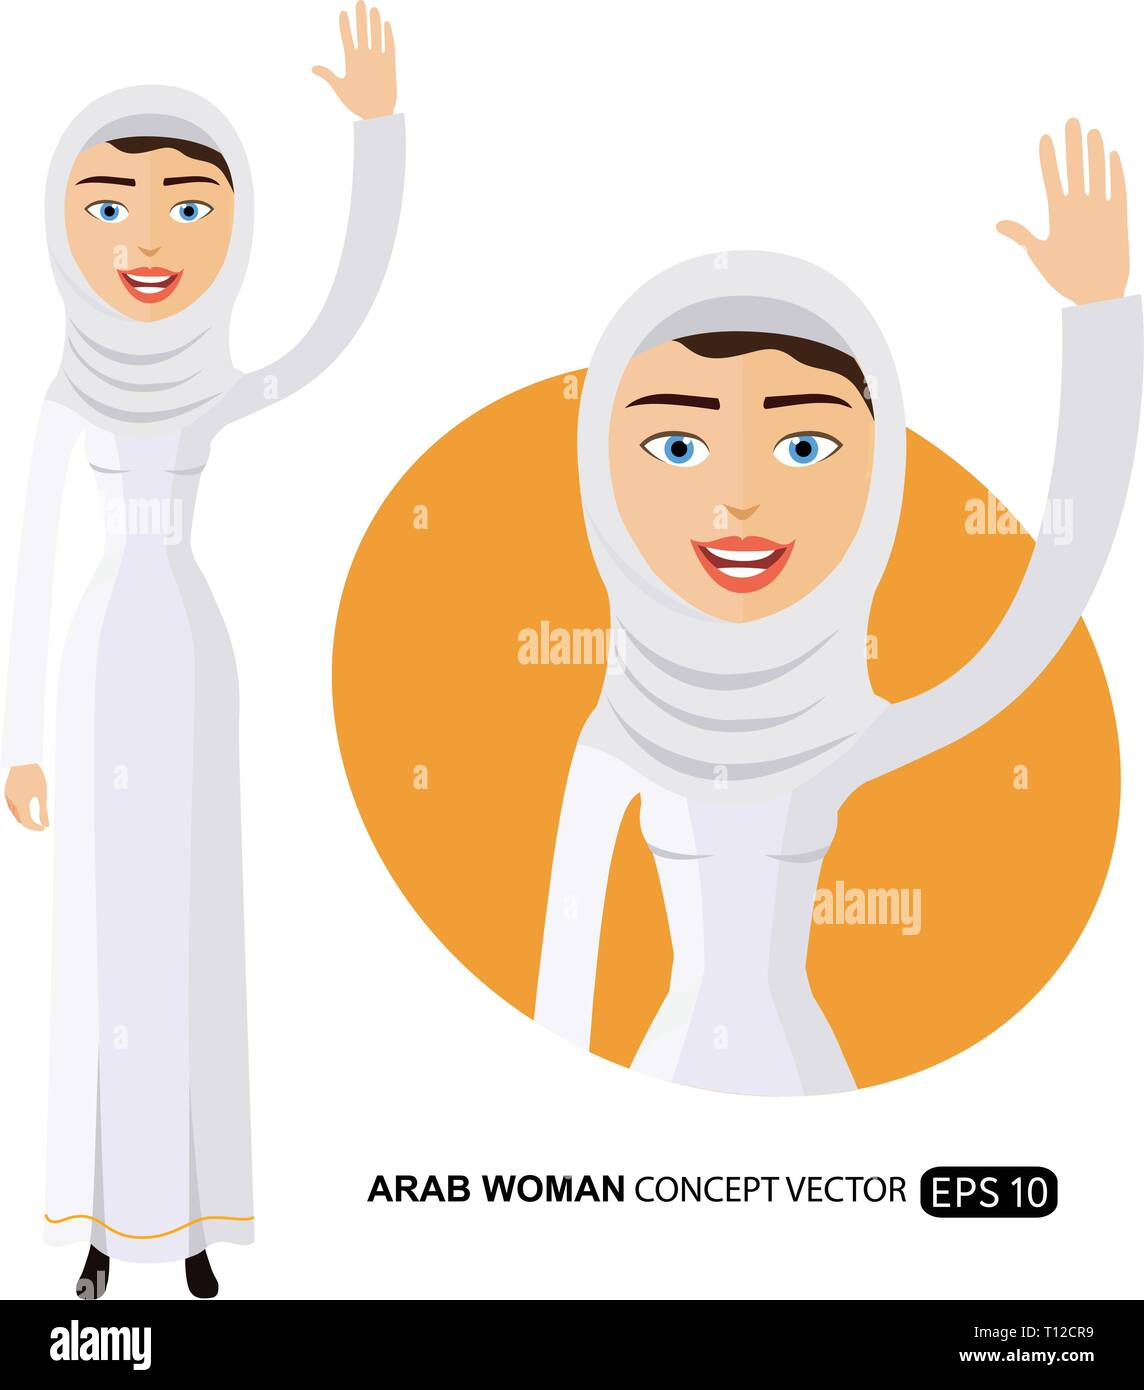 Arab woman waving her hand cartoon vector illustration isolated on white eps 10 - Stock Image